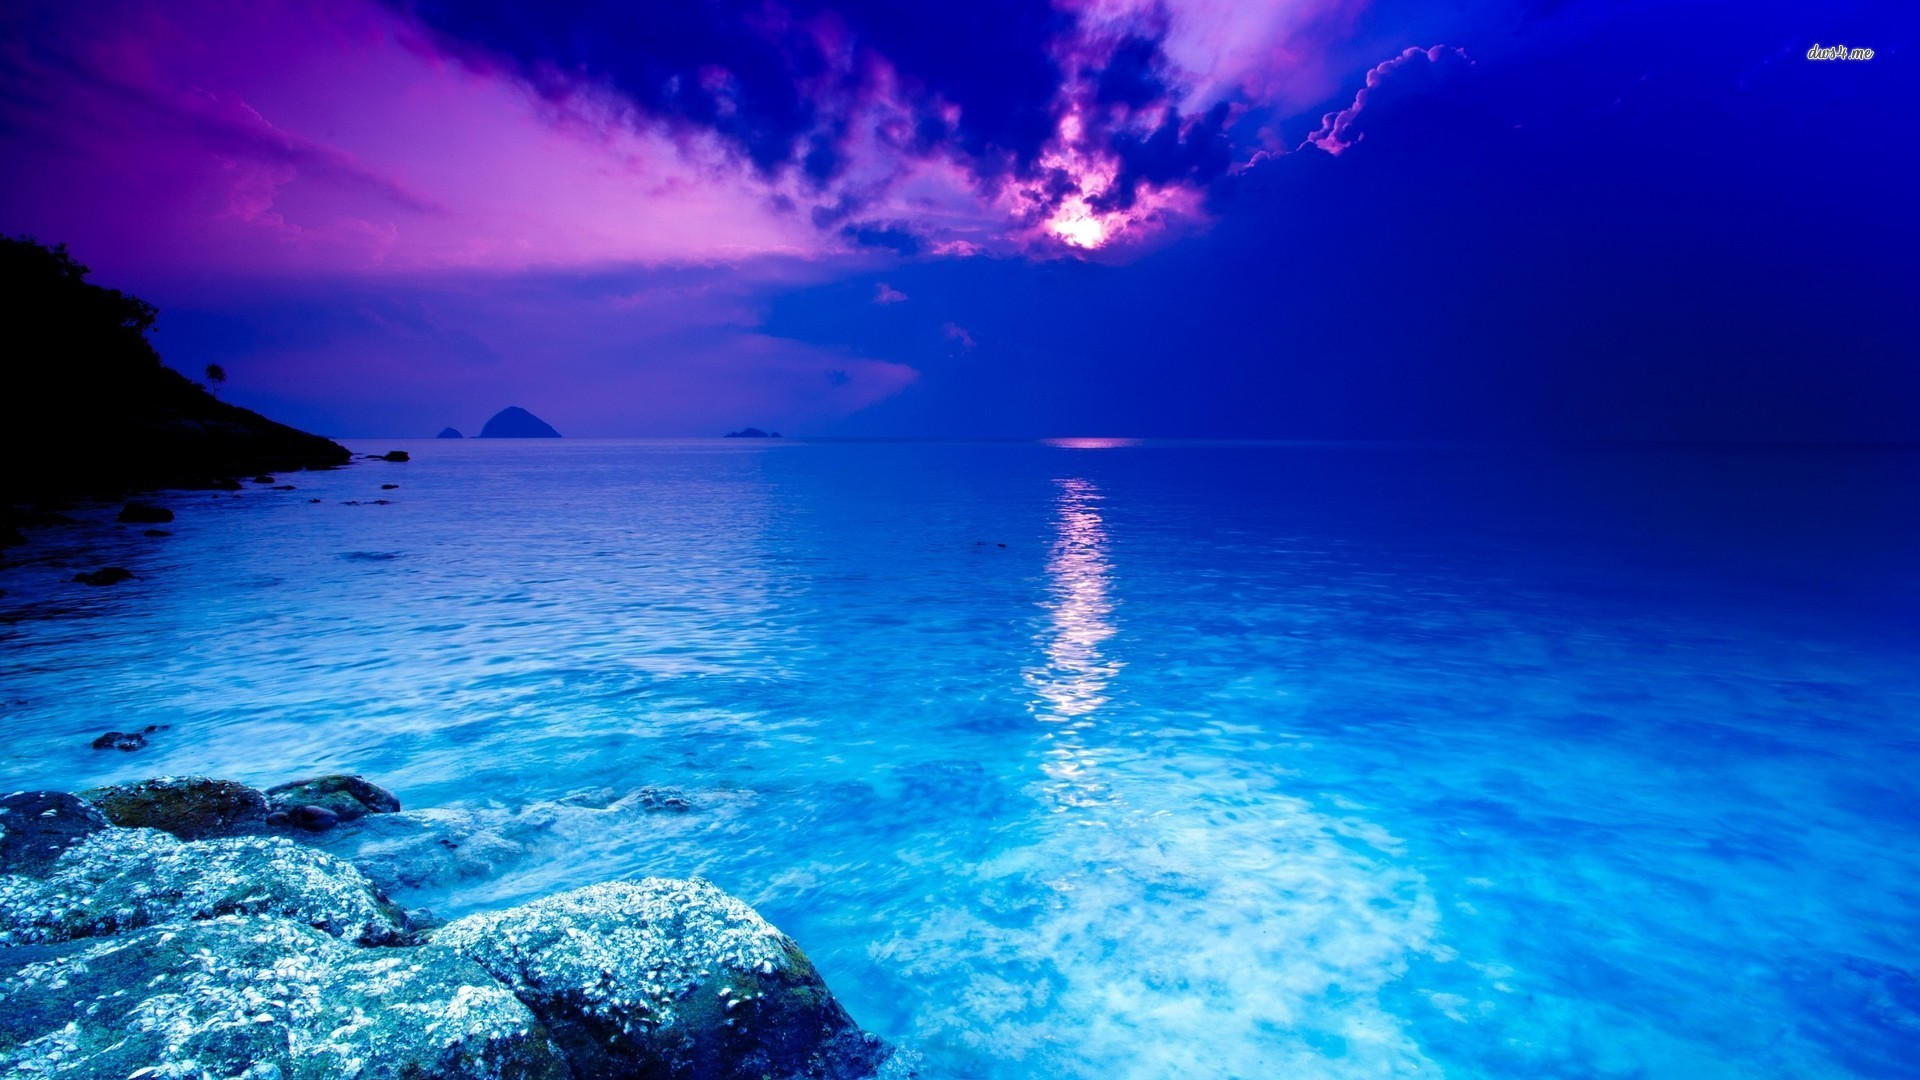 1920x1080 99 best Blue Sea images on Pinterest | Nature, Water and Landscapes Blue Ocean  Wallpaper - WallpaperSafari ...